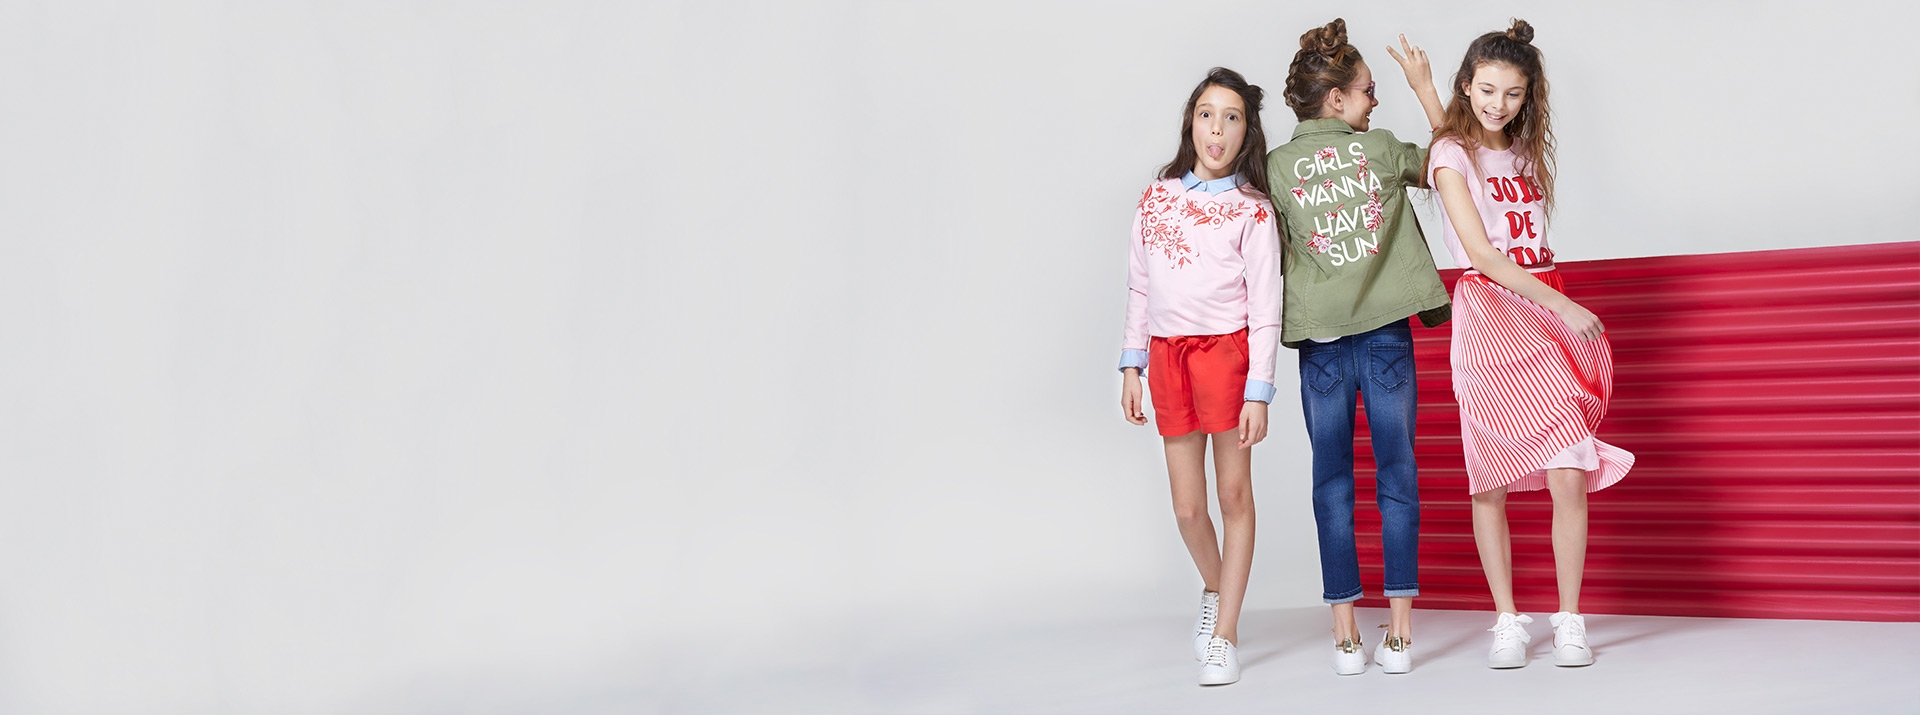 6 must-haves voor mini-fashionista's.